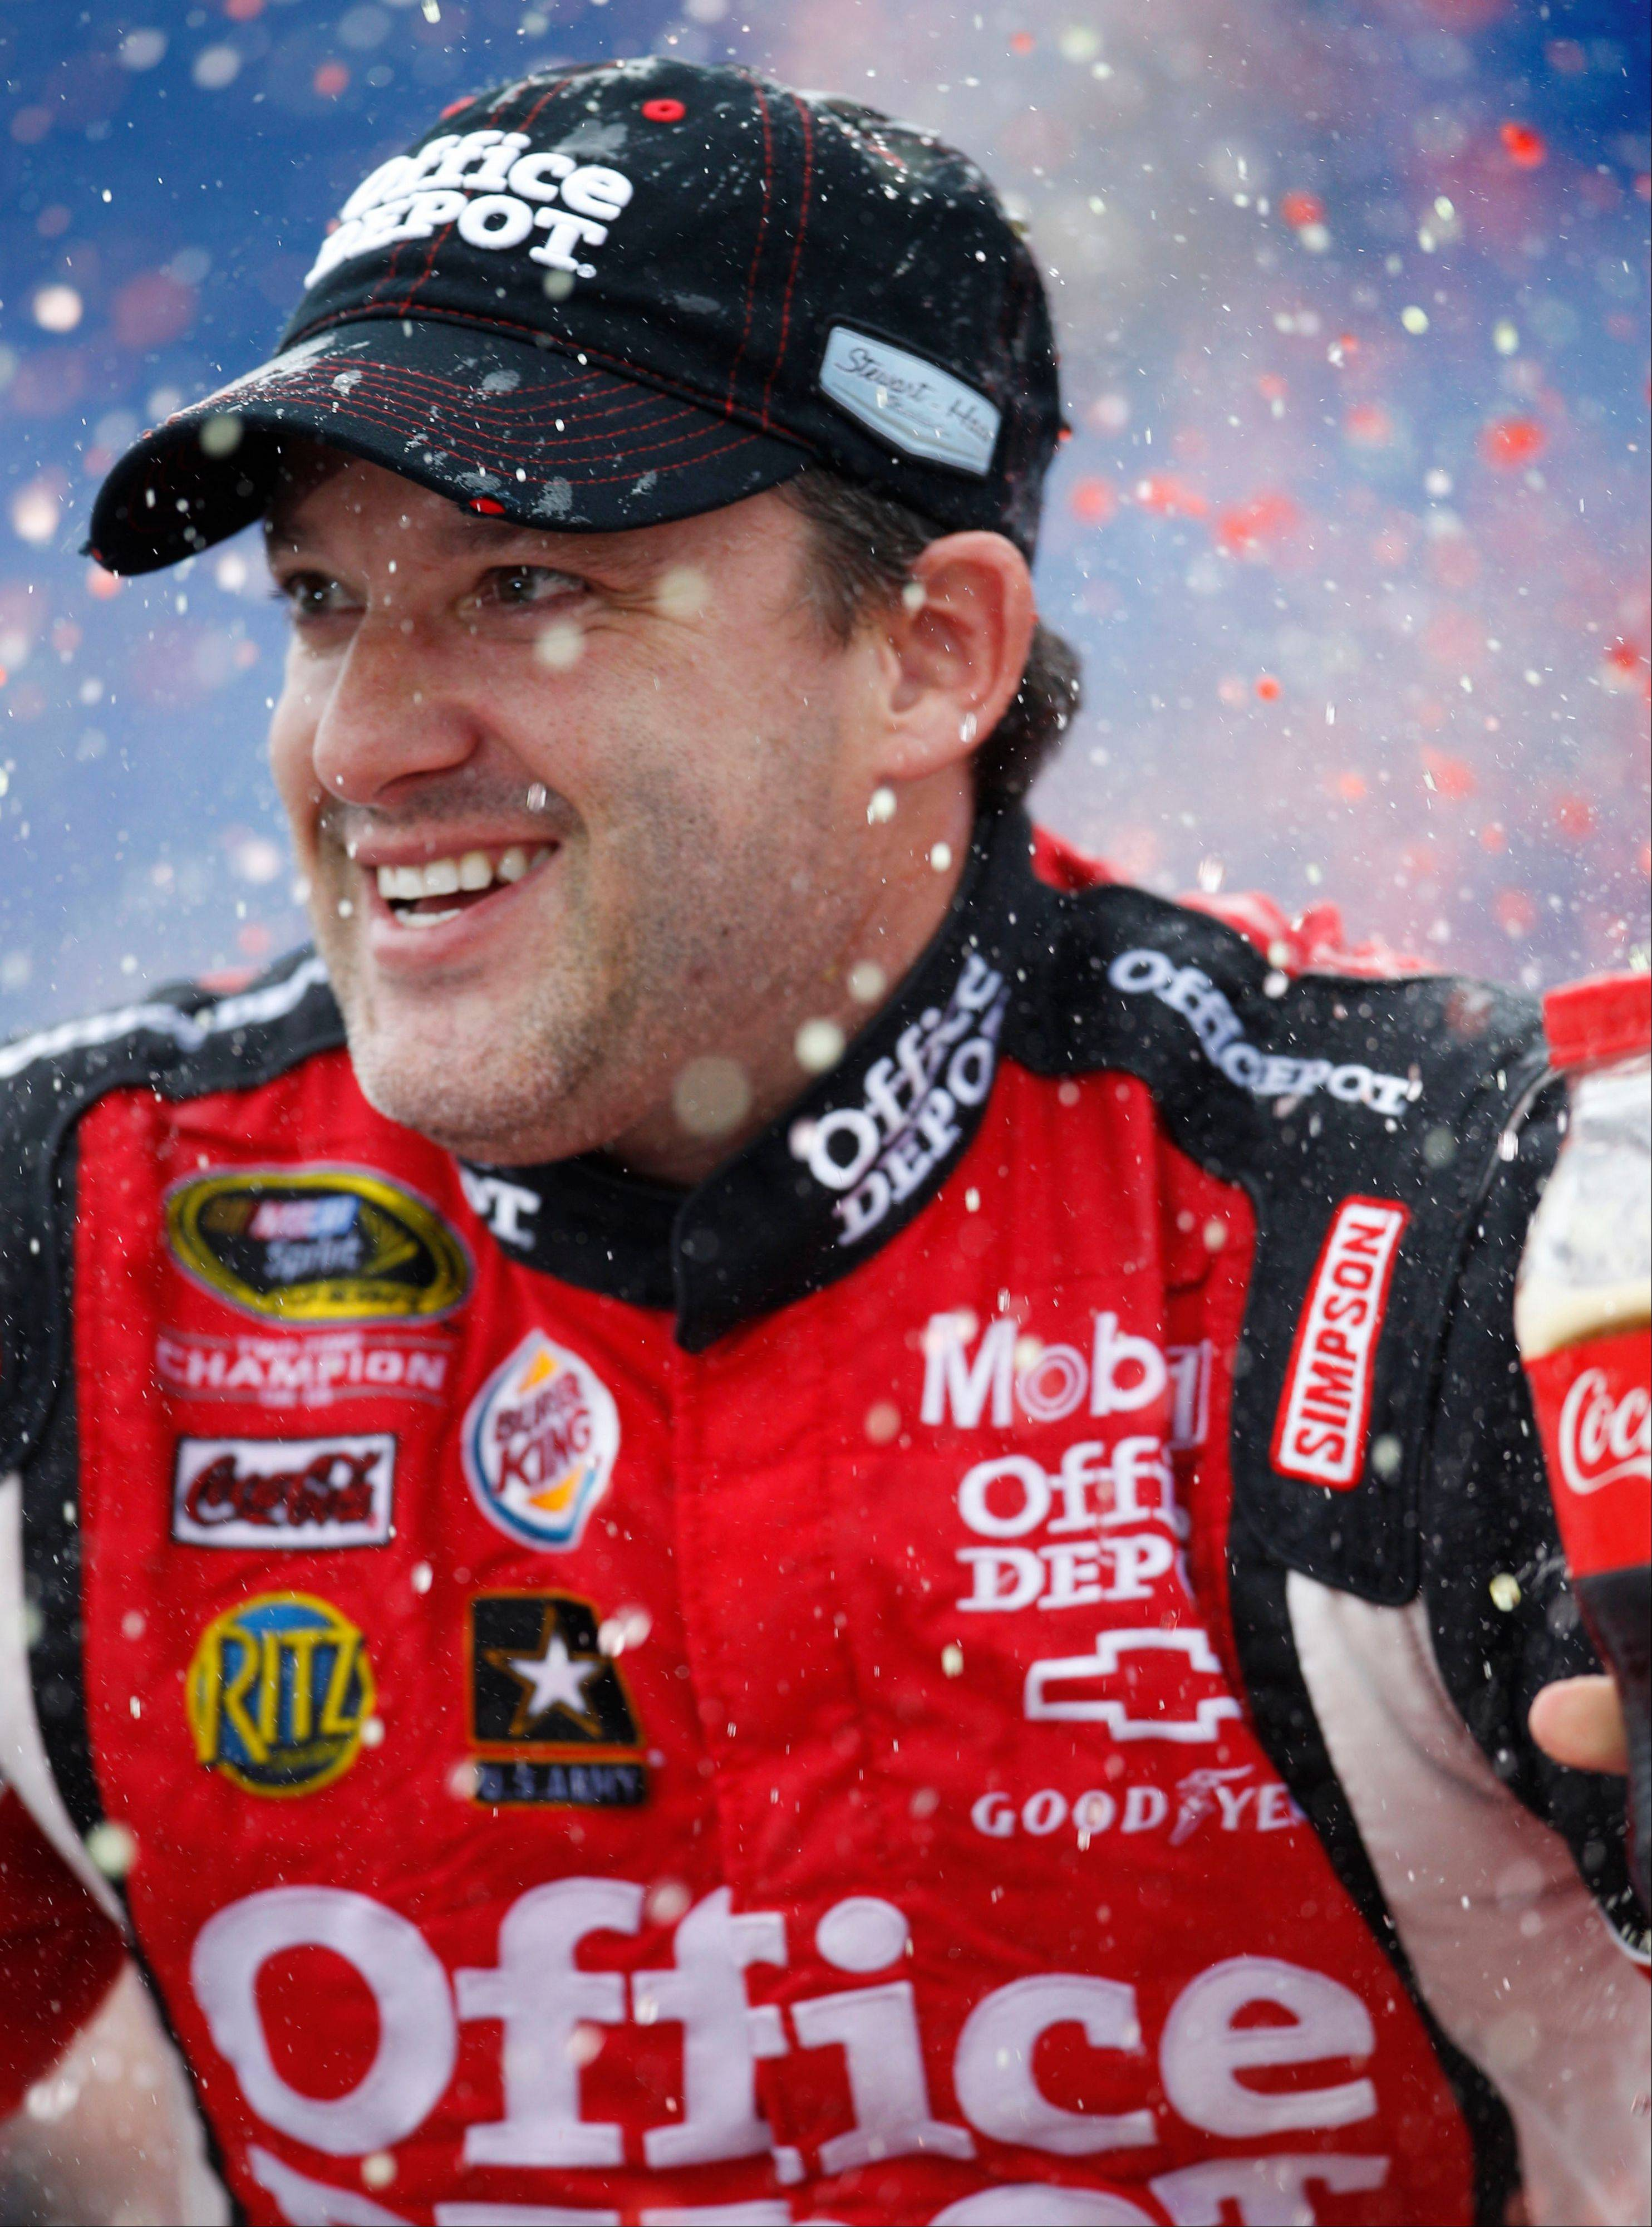 The defending champion at Chicagoland Speedway, Tony Stewart, has a long and successful history at the Joliet track. The NASCAR Sprint Cup Series auto race, the Geico 400, takes place Saturday in Joliet.